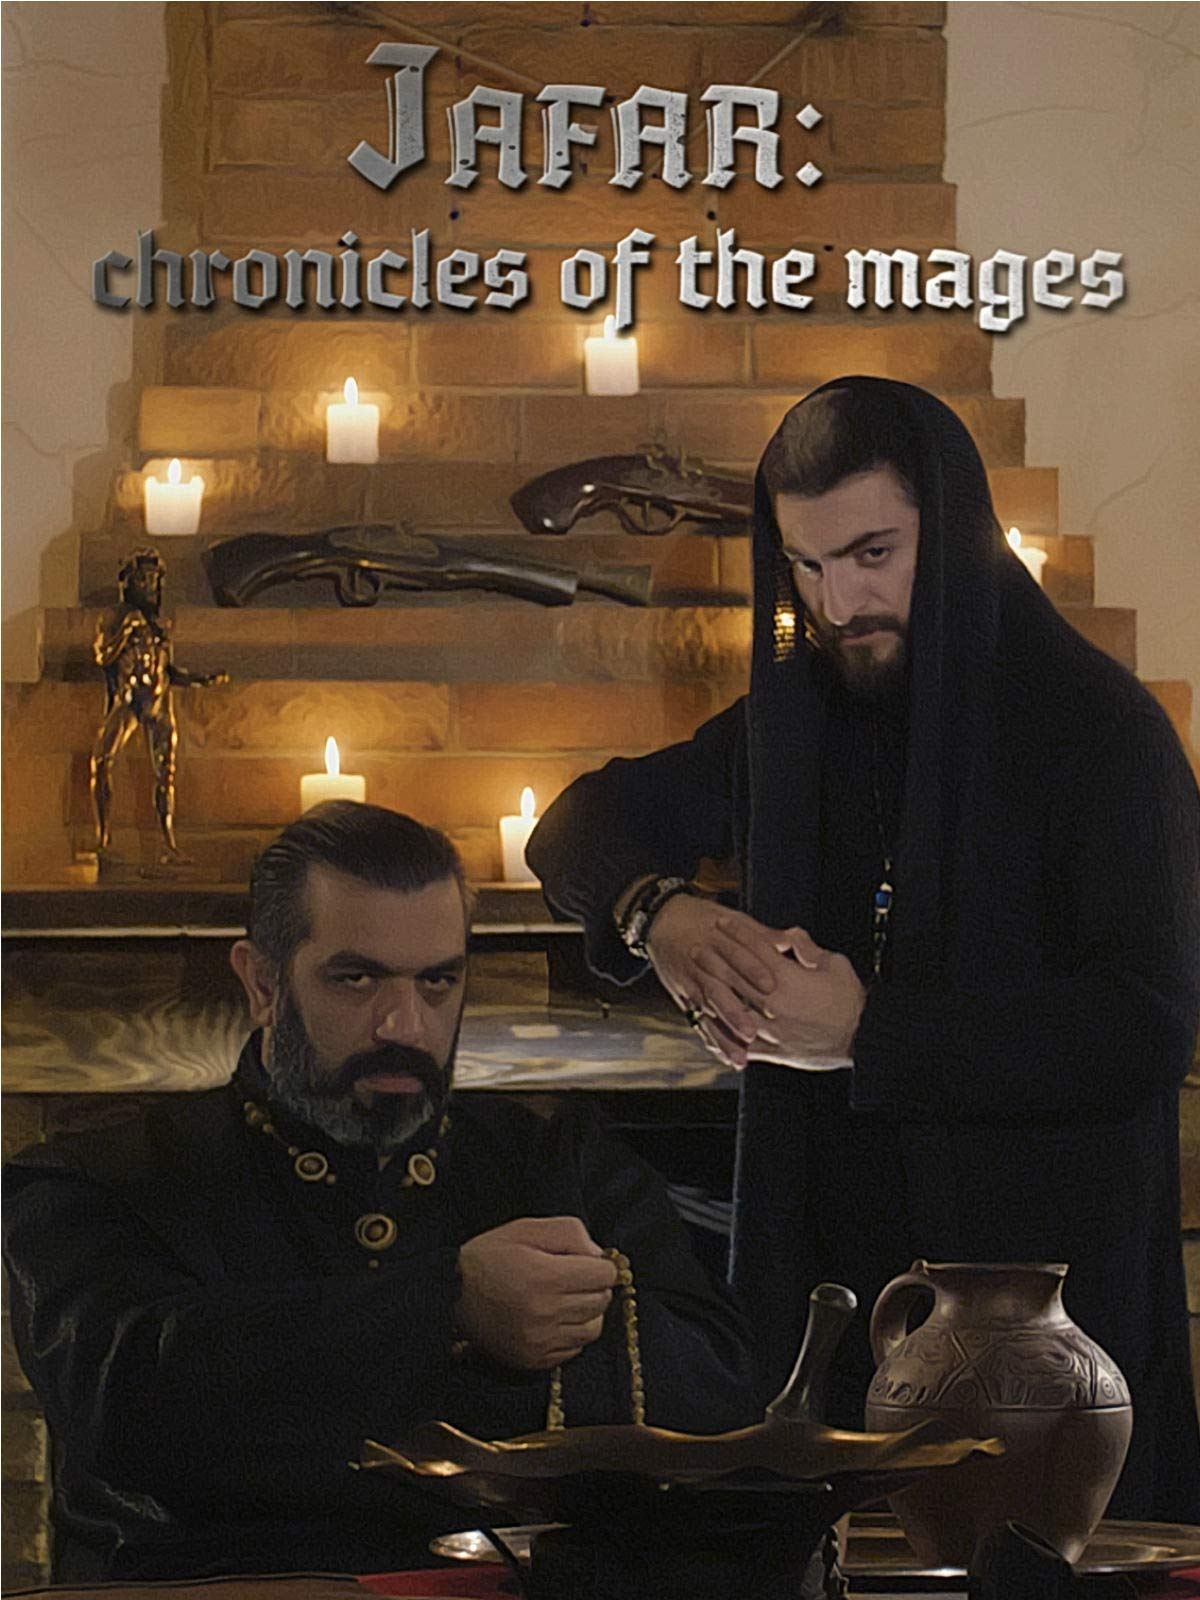 Jafar: Chronicles of the mages.